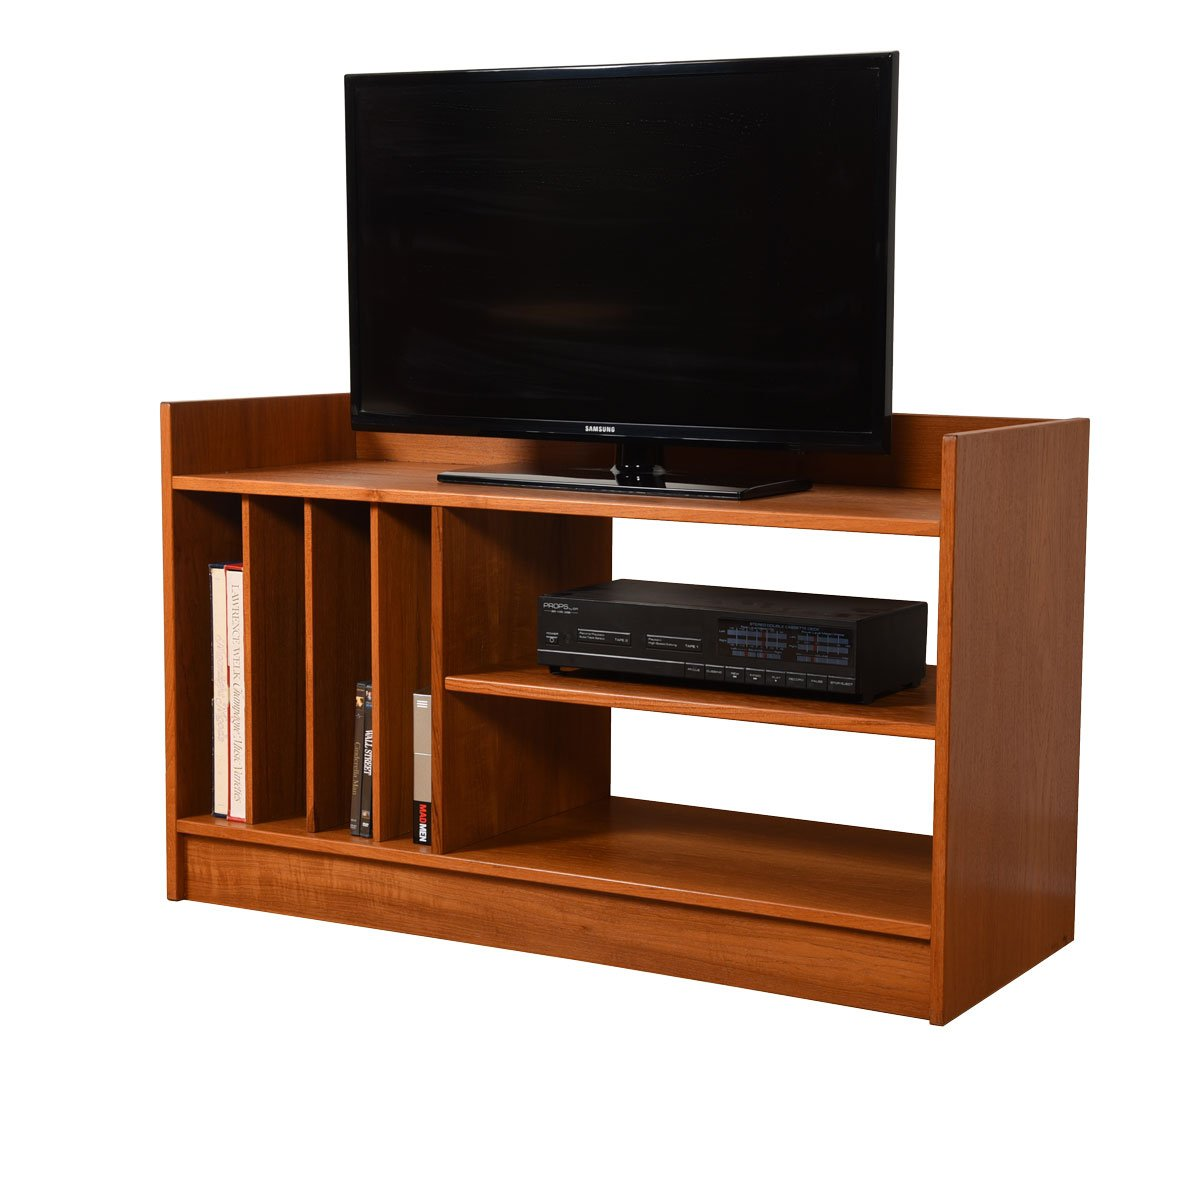 Danish Modern Teak Compact Media / Vinyl Shelf Unit.